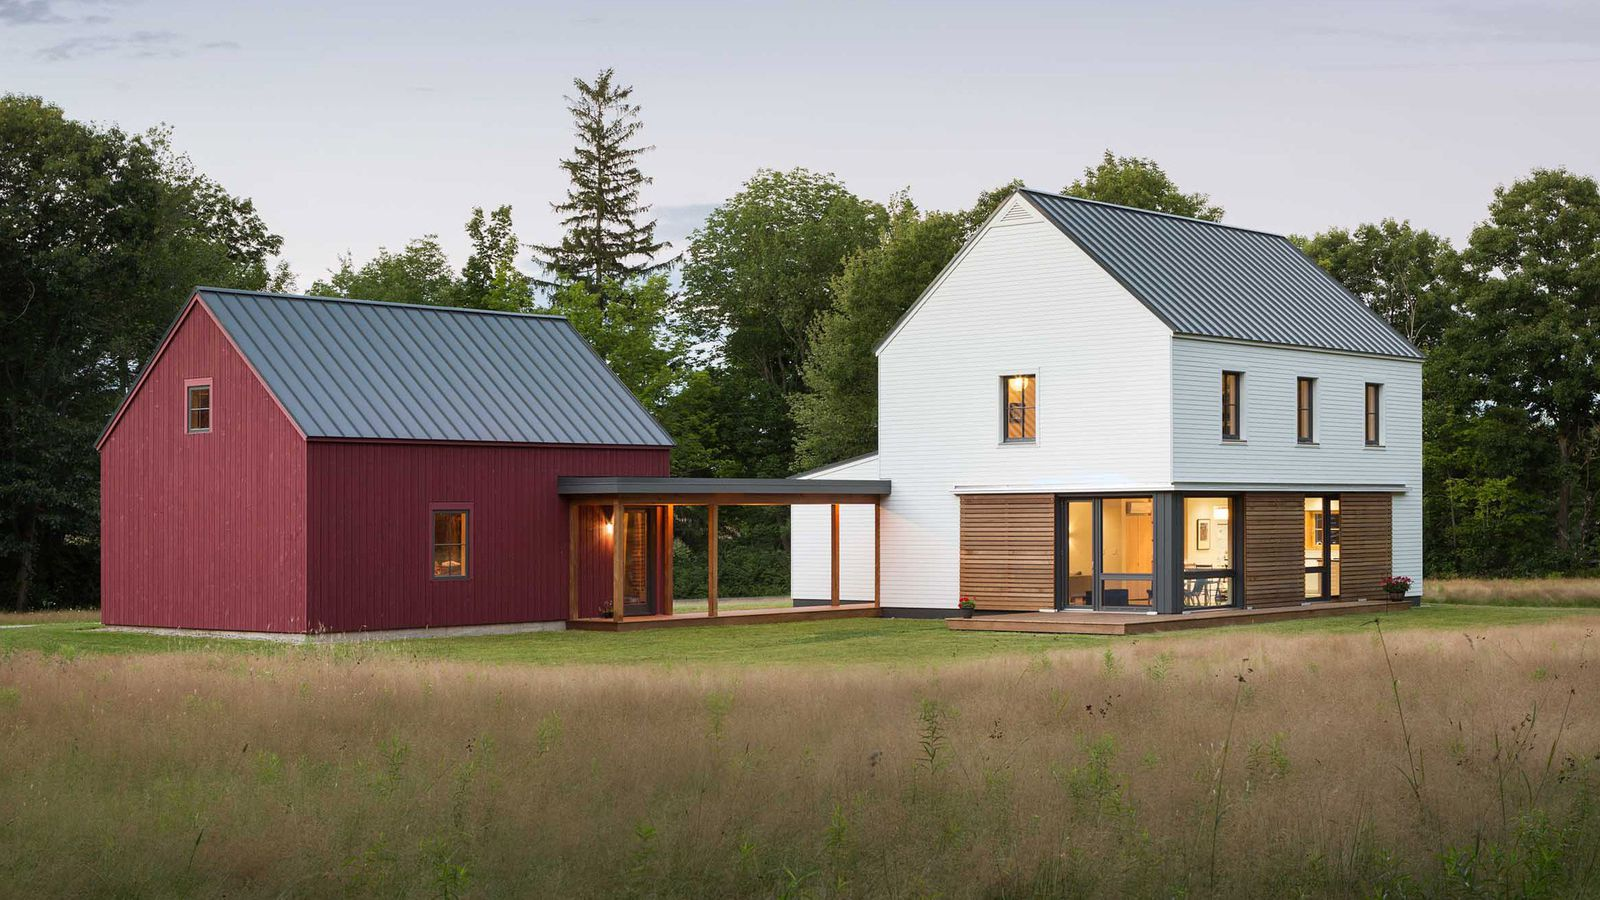 Prefab homes from go logic offer rural modernism for Pre fab modern homes